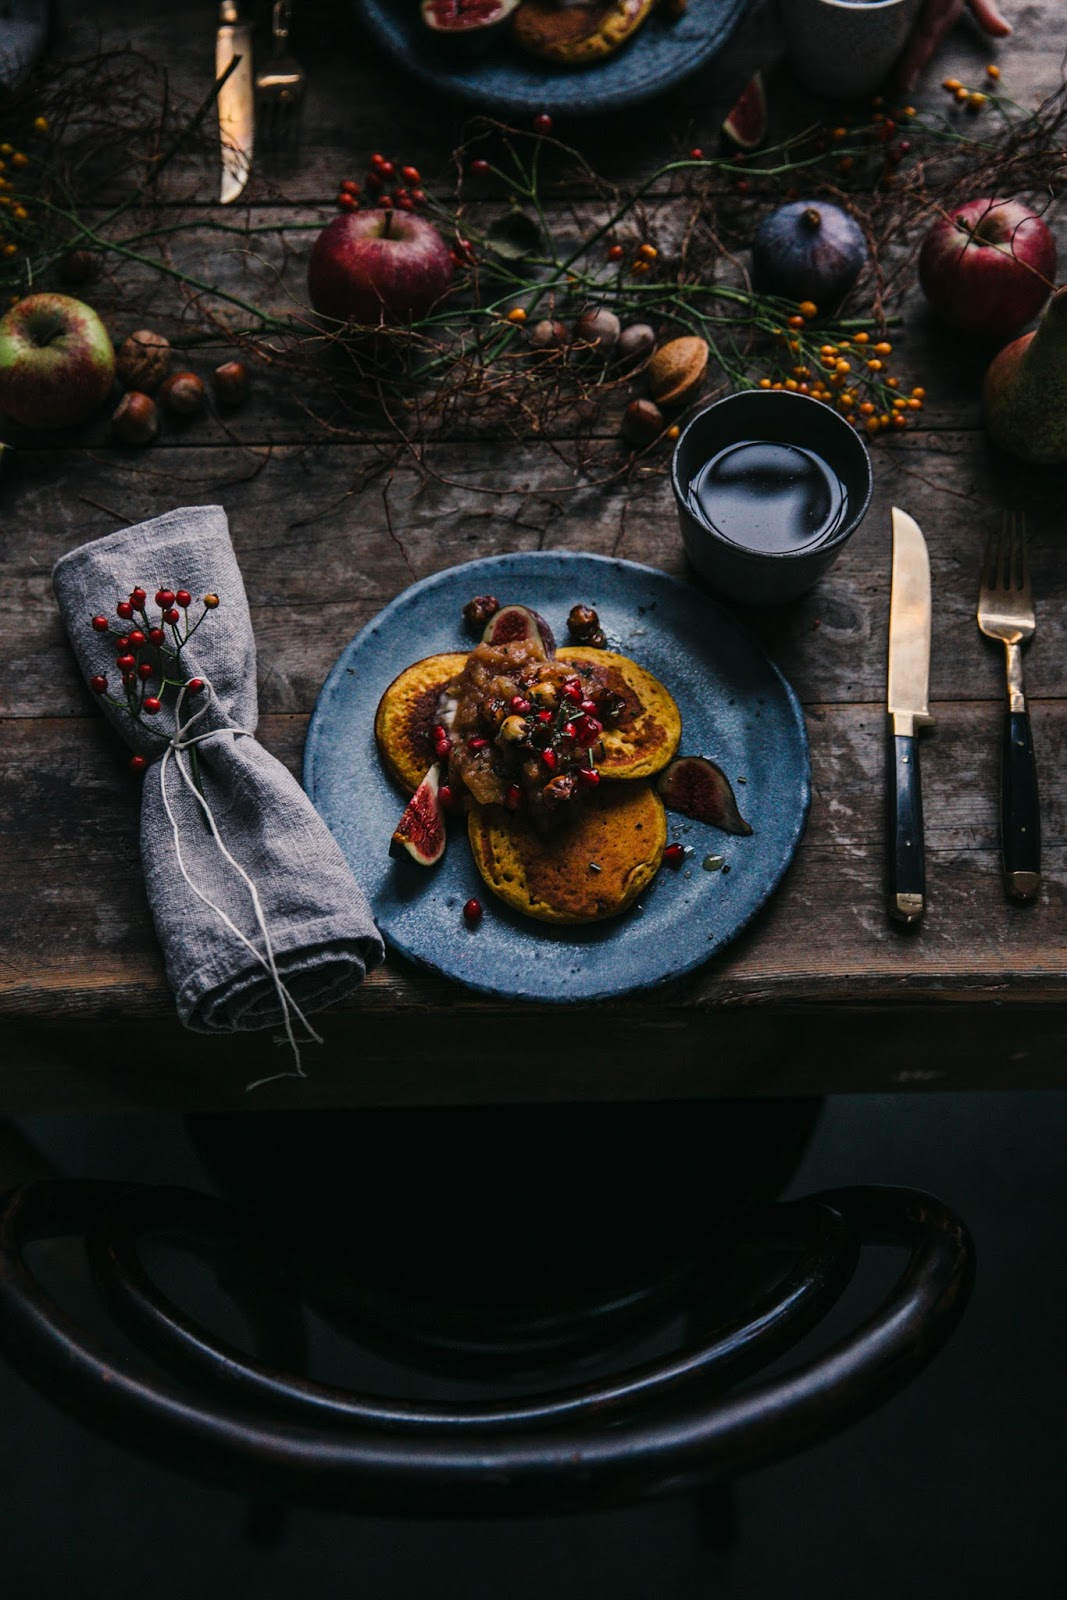 Tabletop styling from Our Food Stories